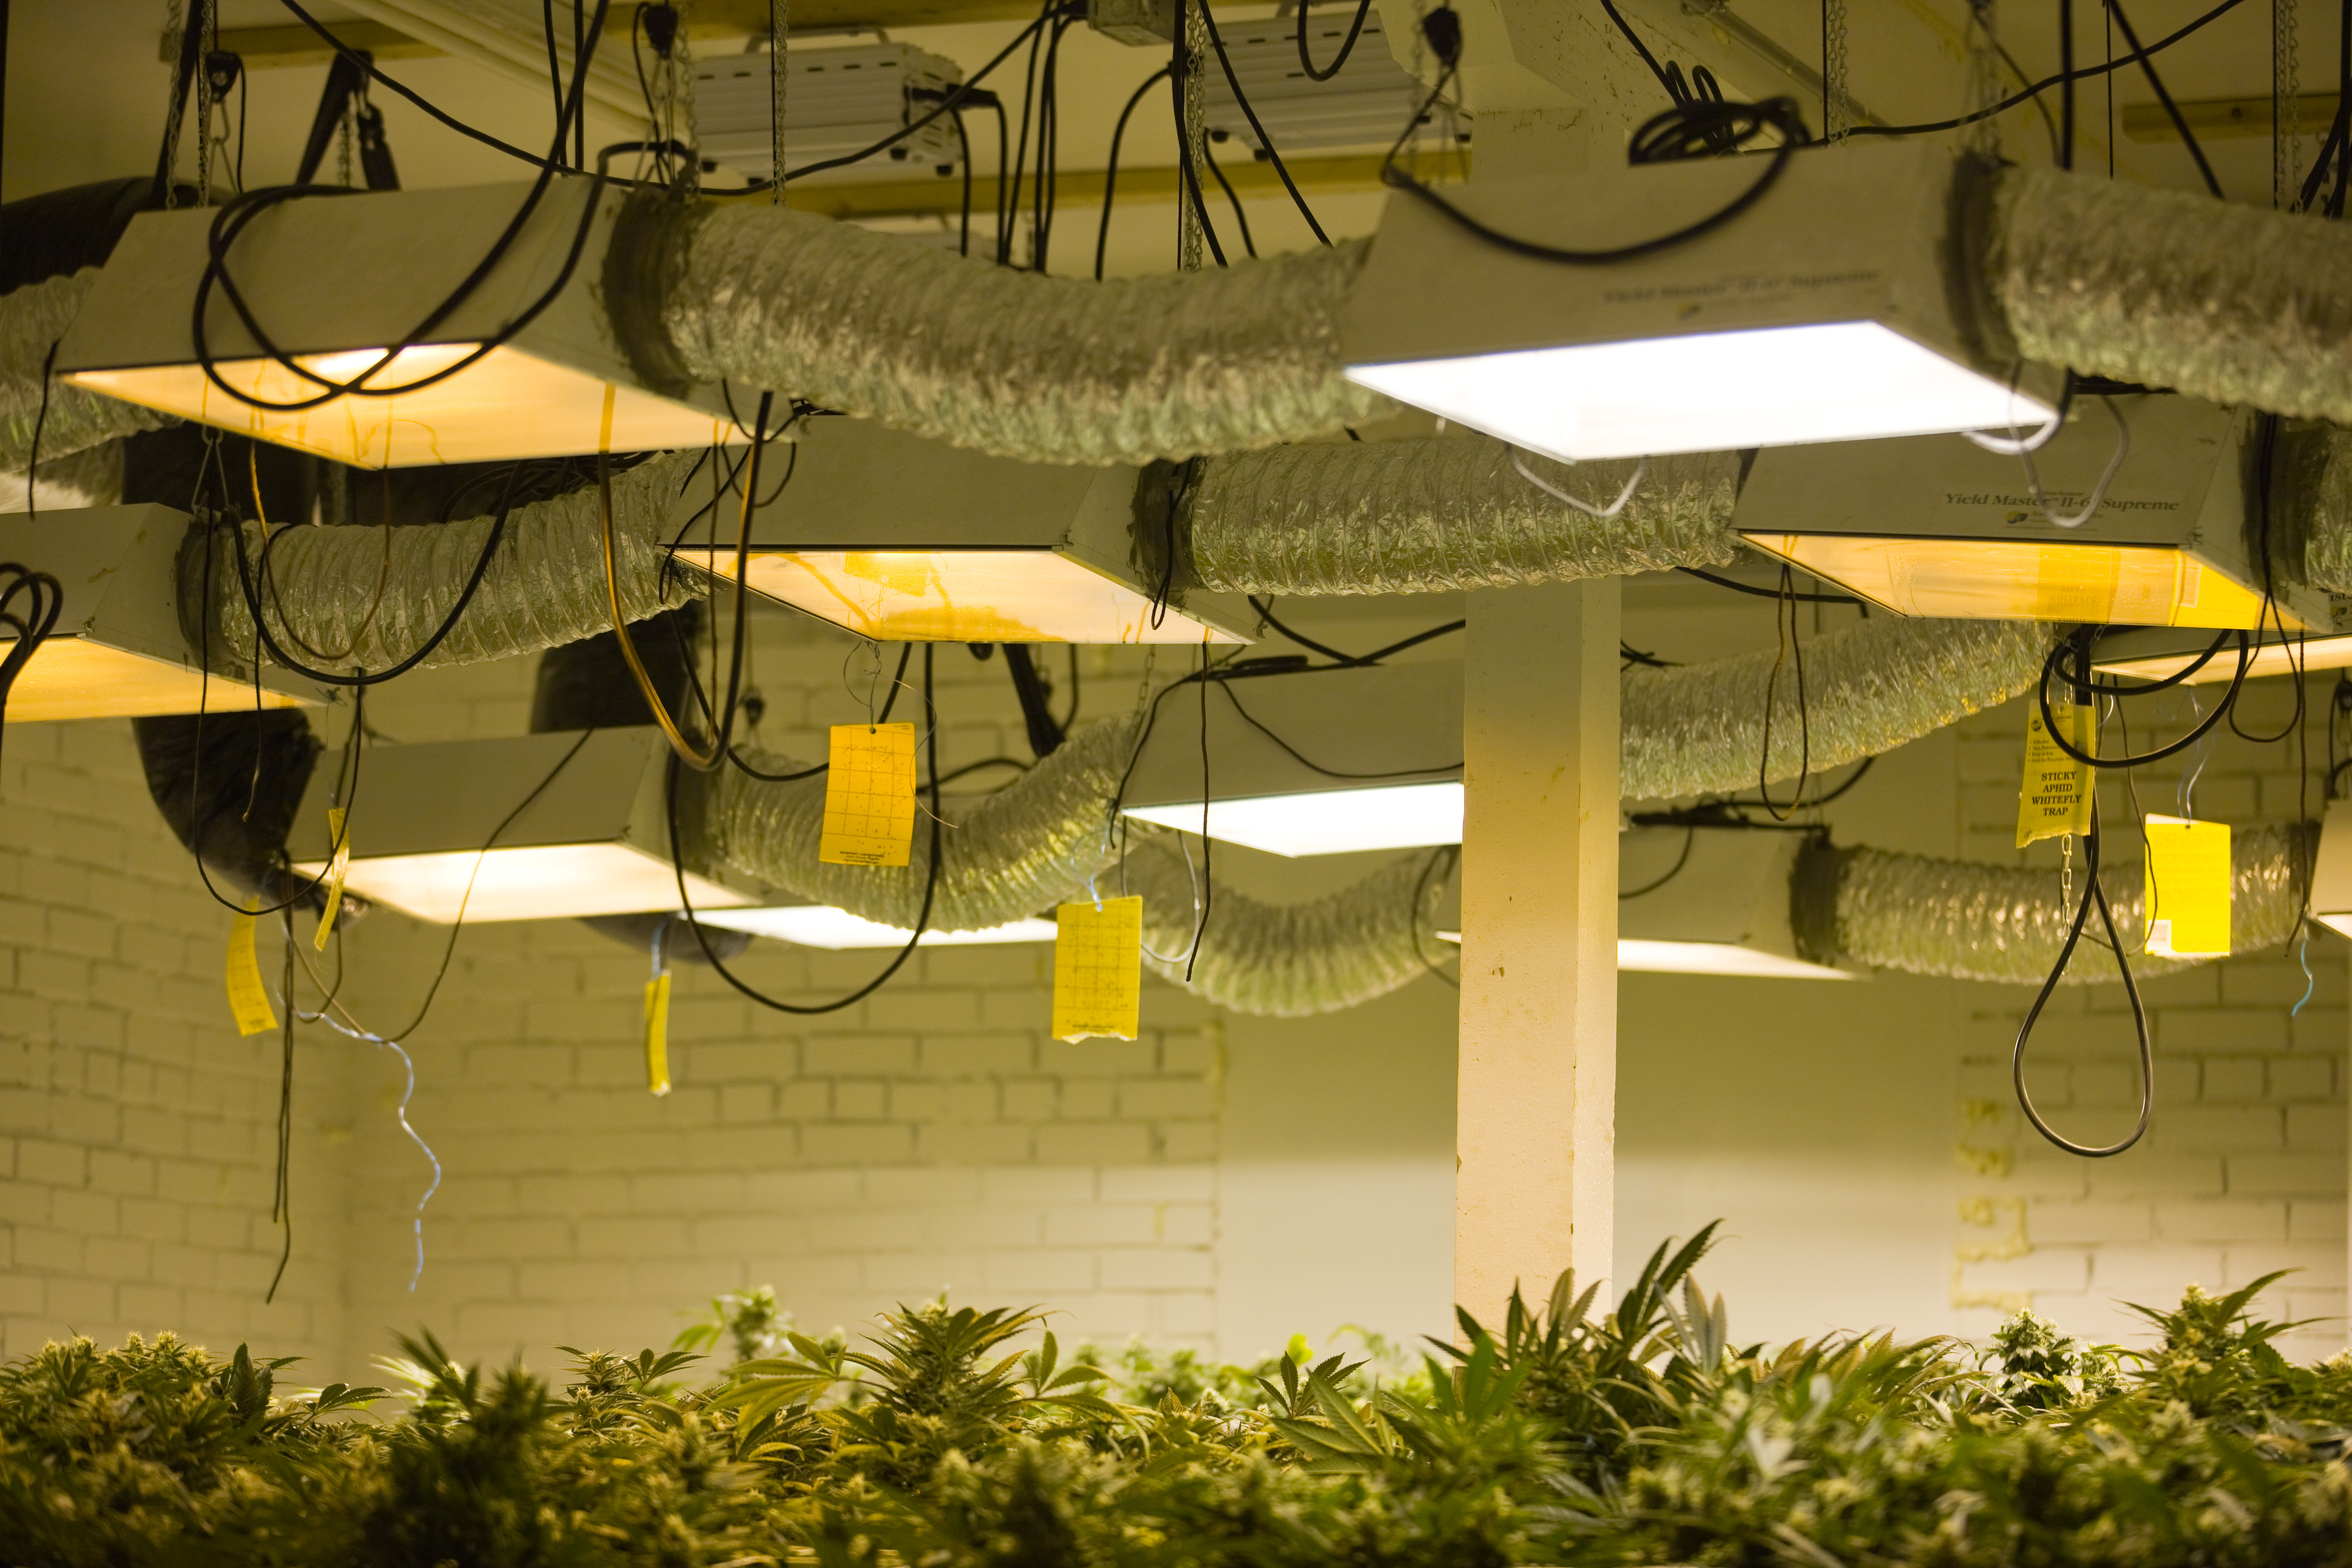 A Medical Marijuana Operation In Colorado Run By Kristi Kelly, Co-Founder Of Good Meds Network